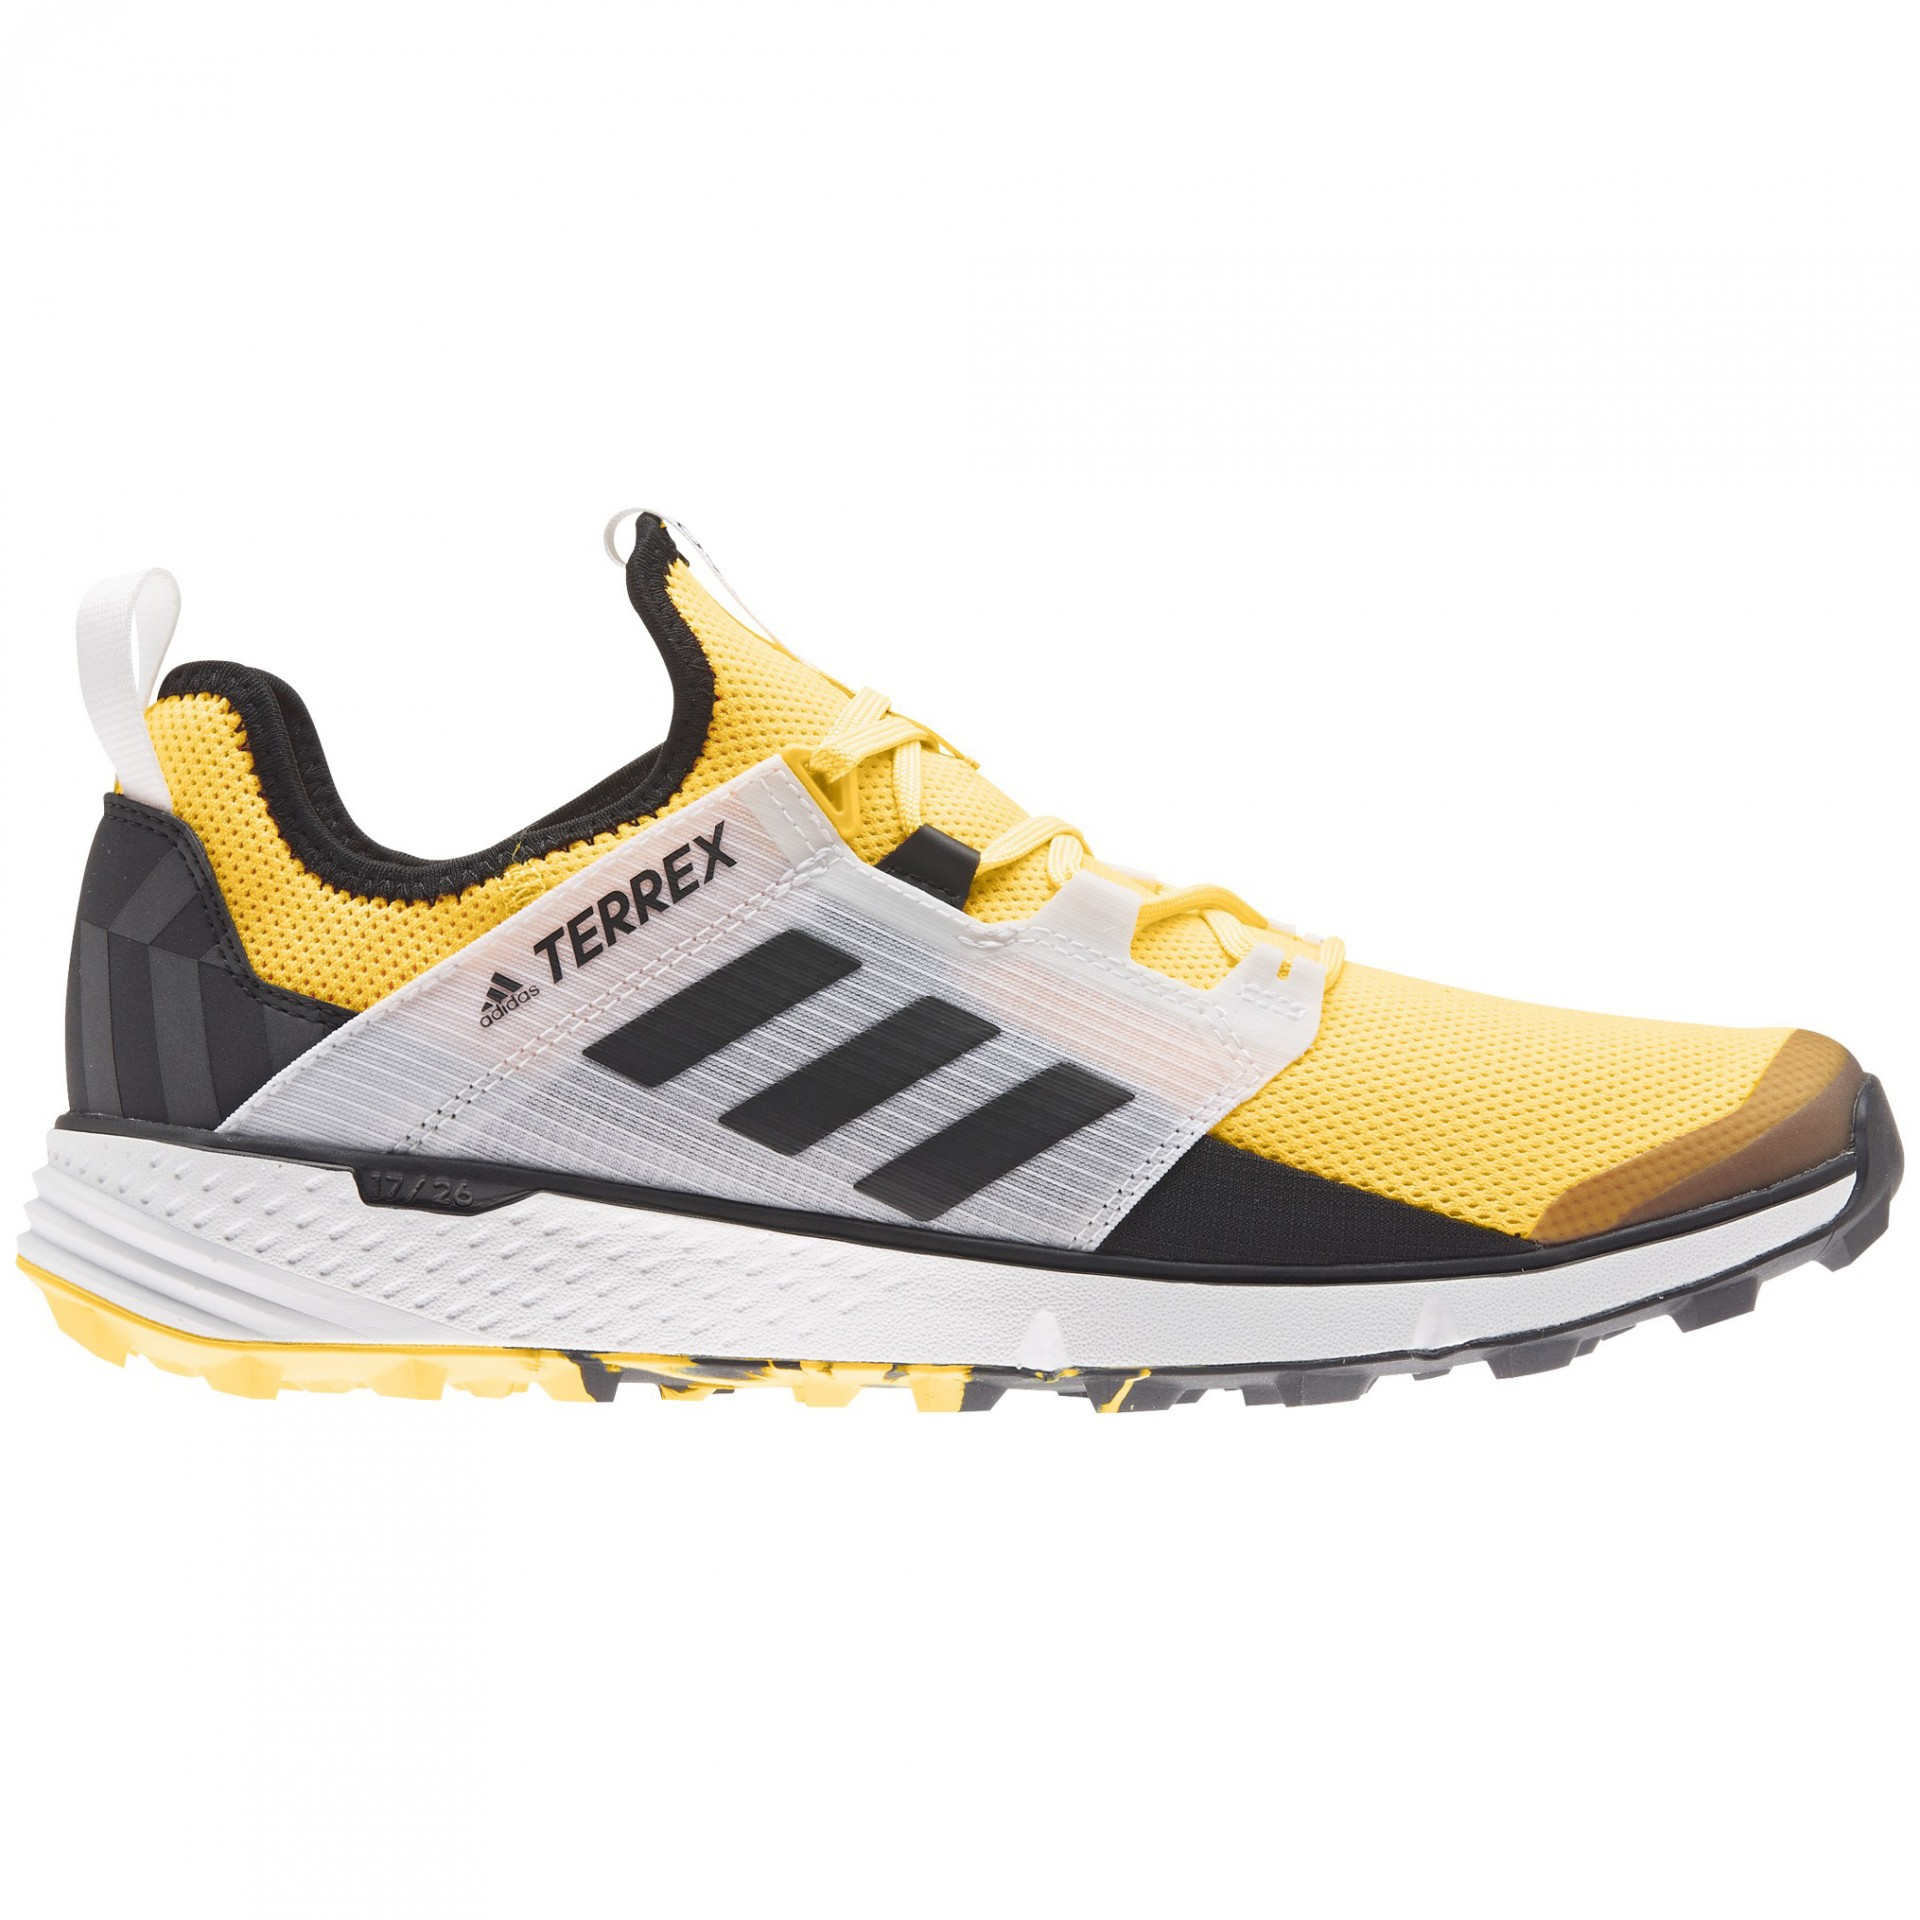 Adidas Terrex Speed LD Gold/Black